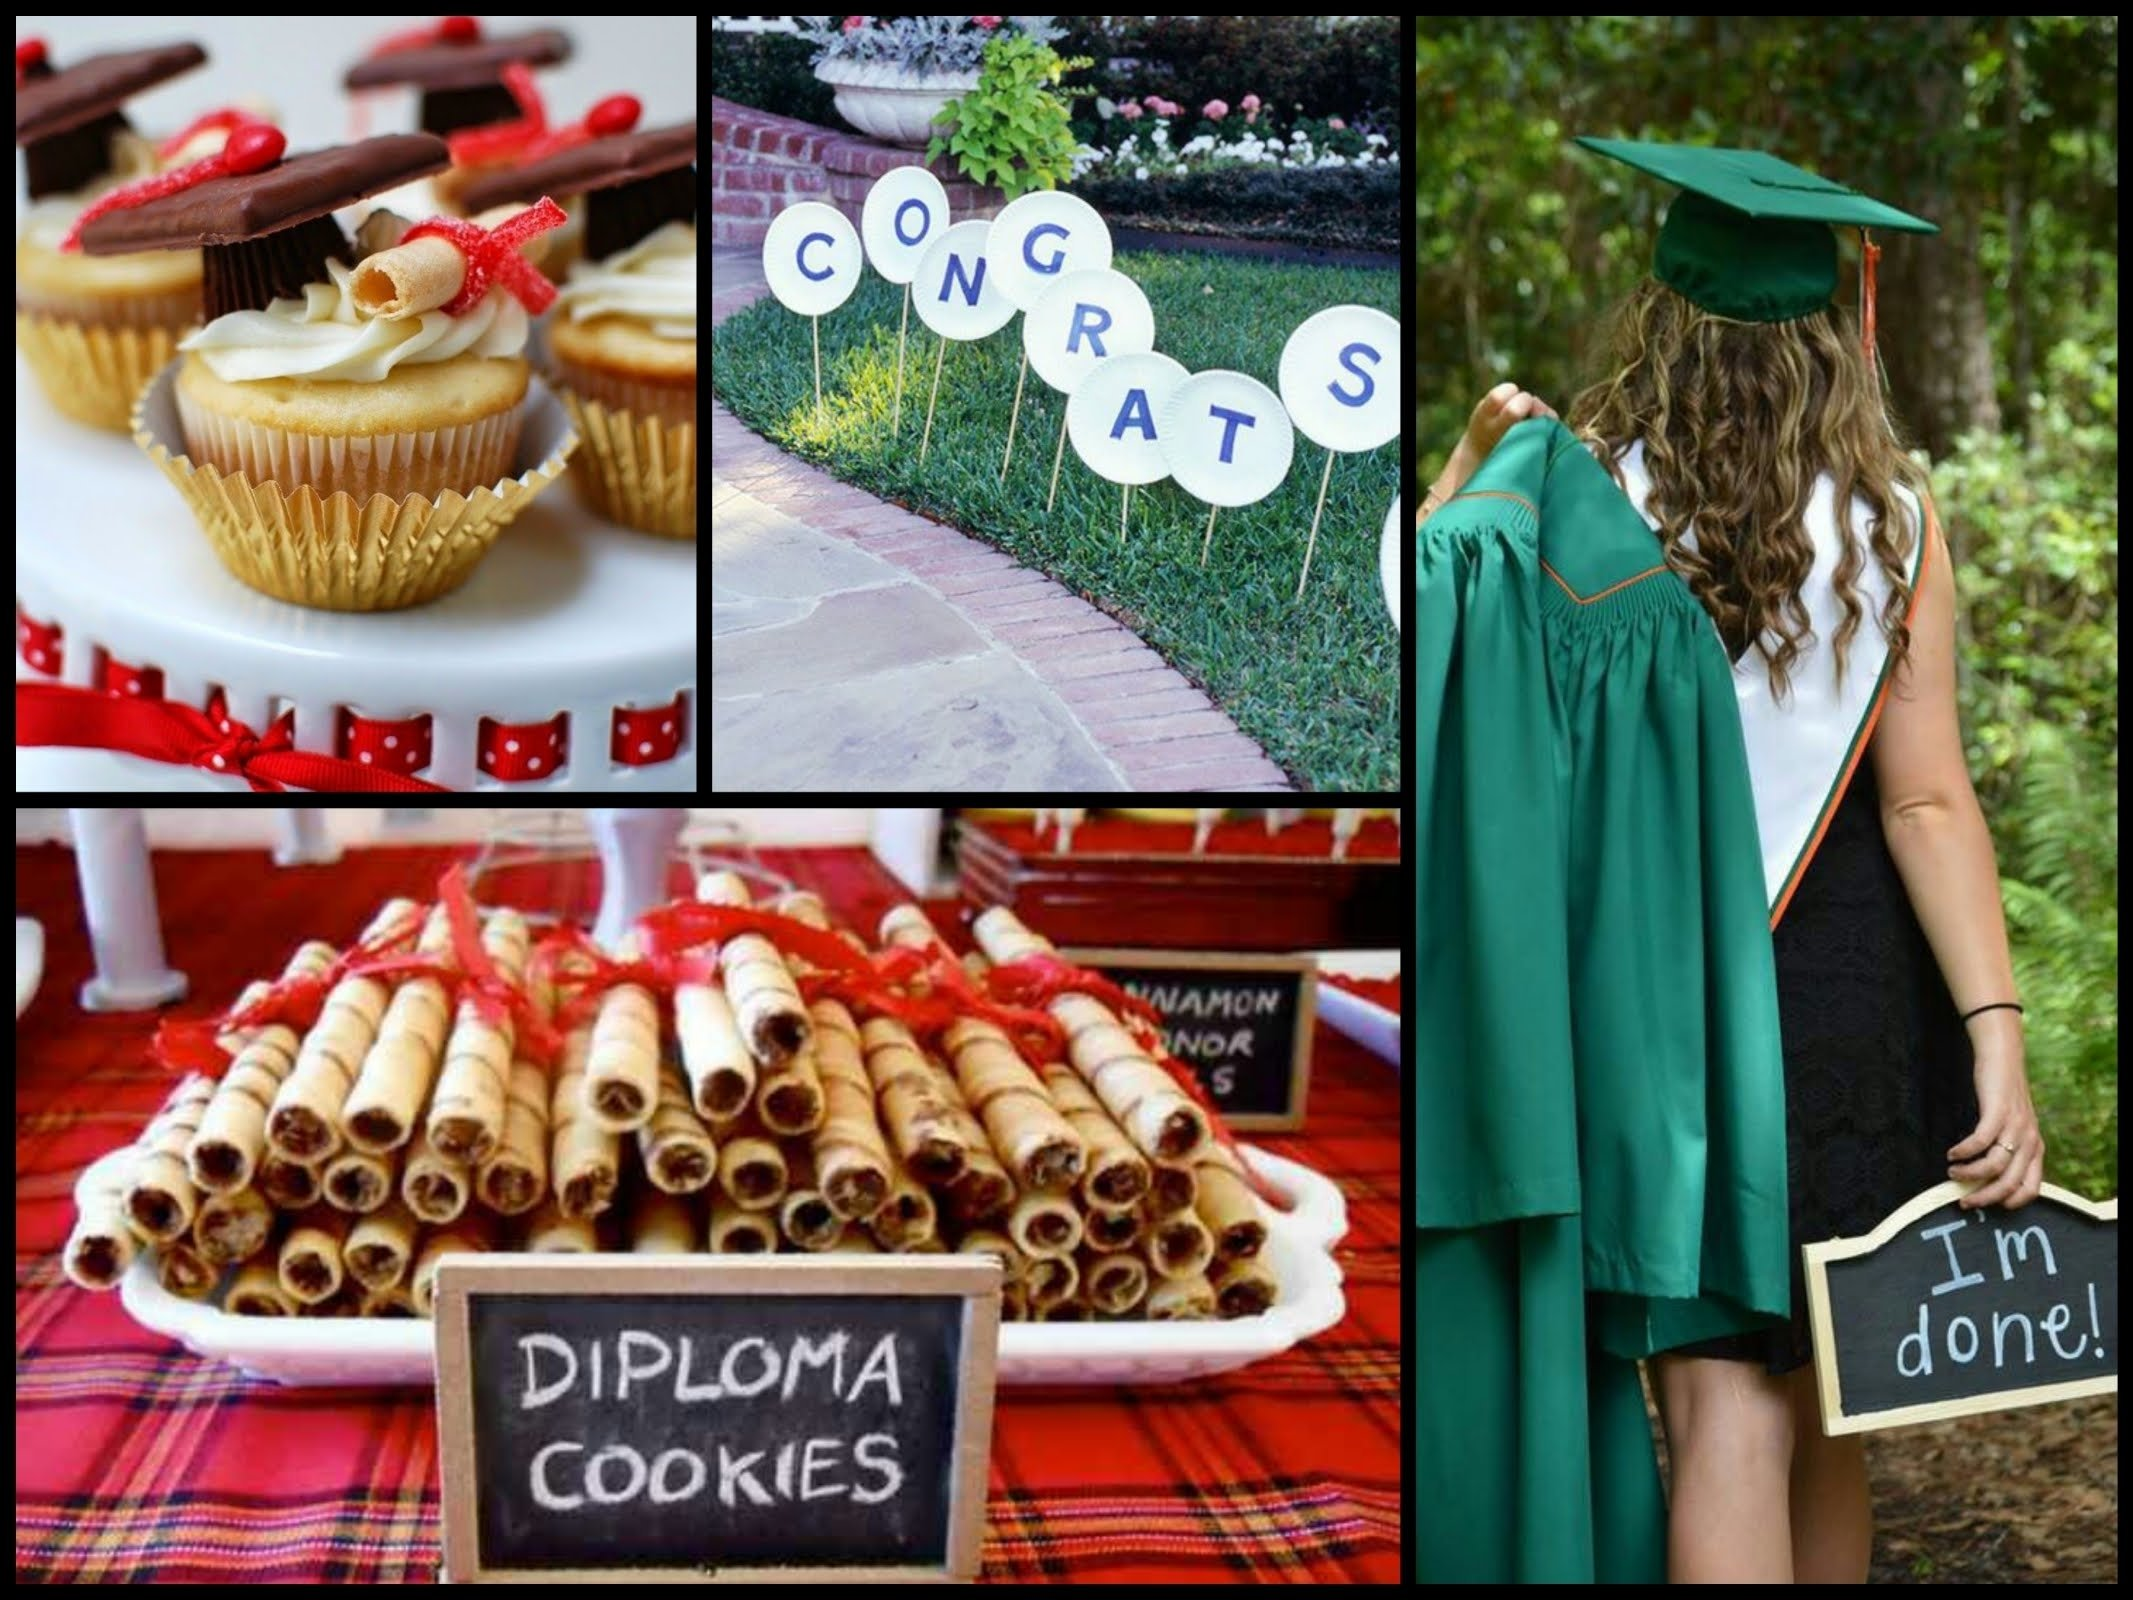 10 Trendy Ideas For A Graduation Party 25 diy graduation party ideas youtube 10